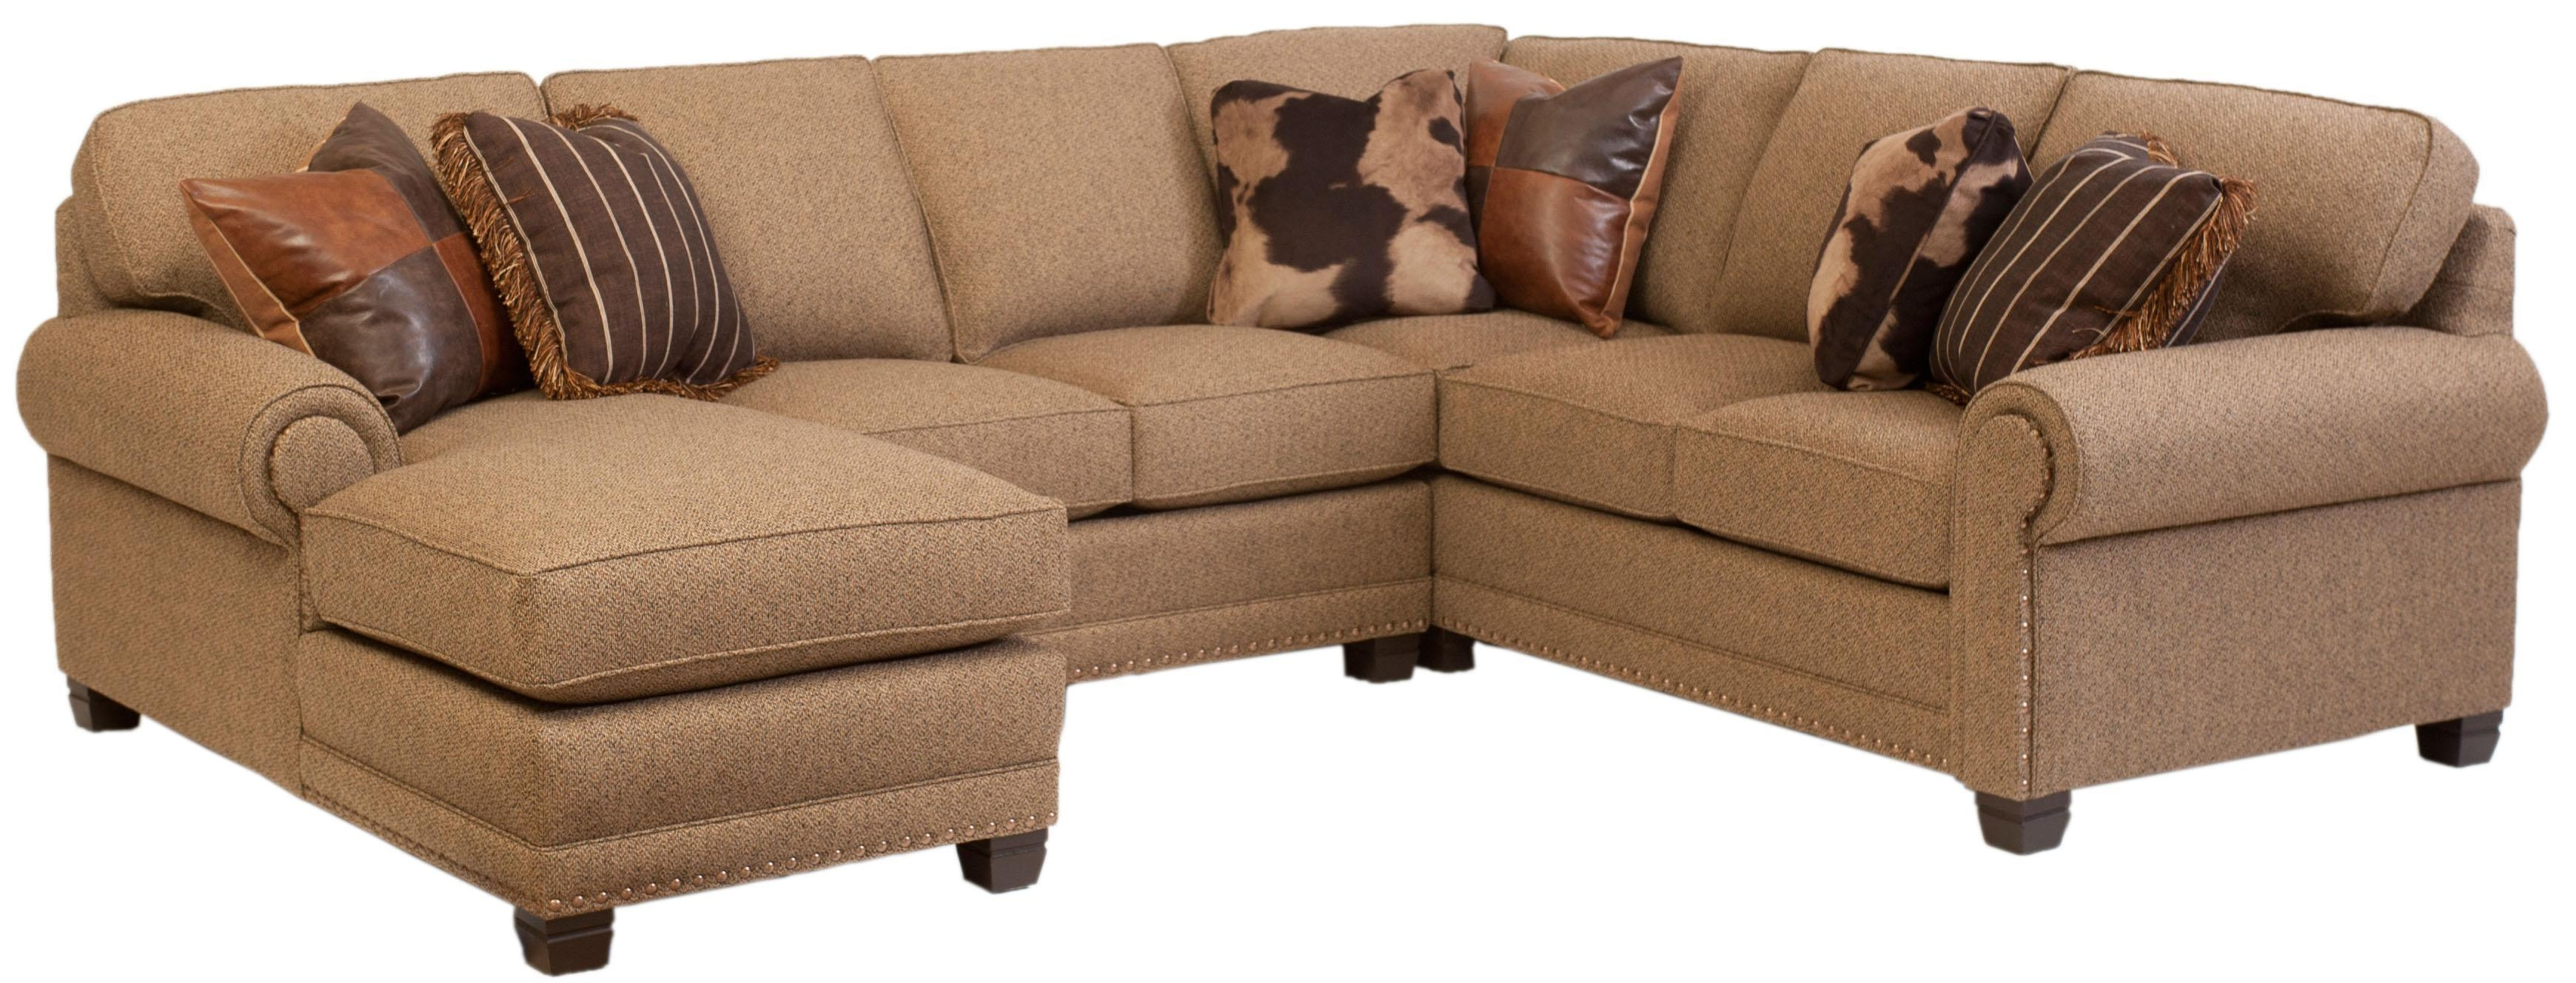 Sofas Center : Frighteningtional Sofa With Chaise Lounge Image Throughout Angled Chaise Sofa (Image 14 of 20)